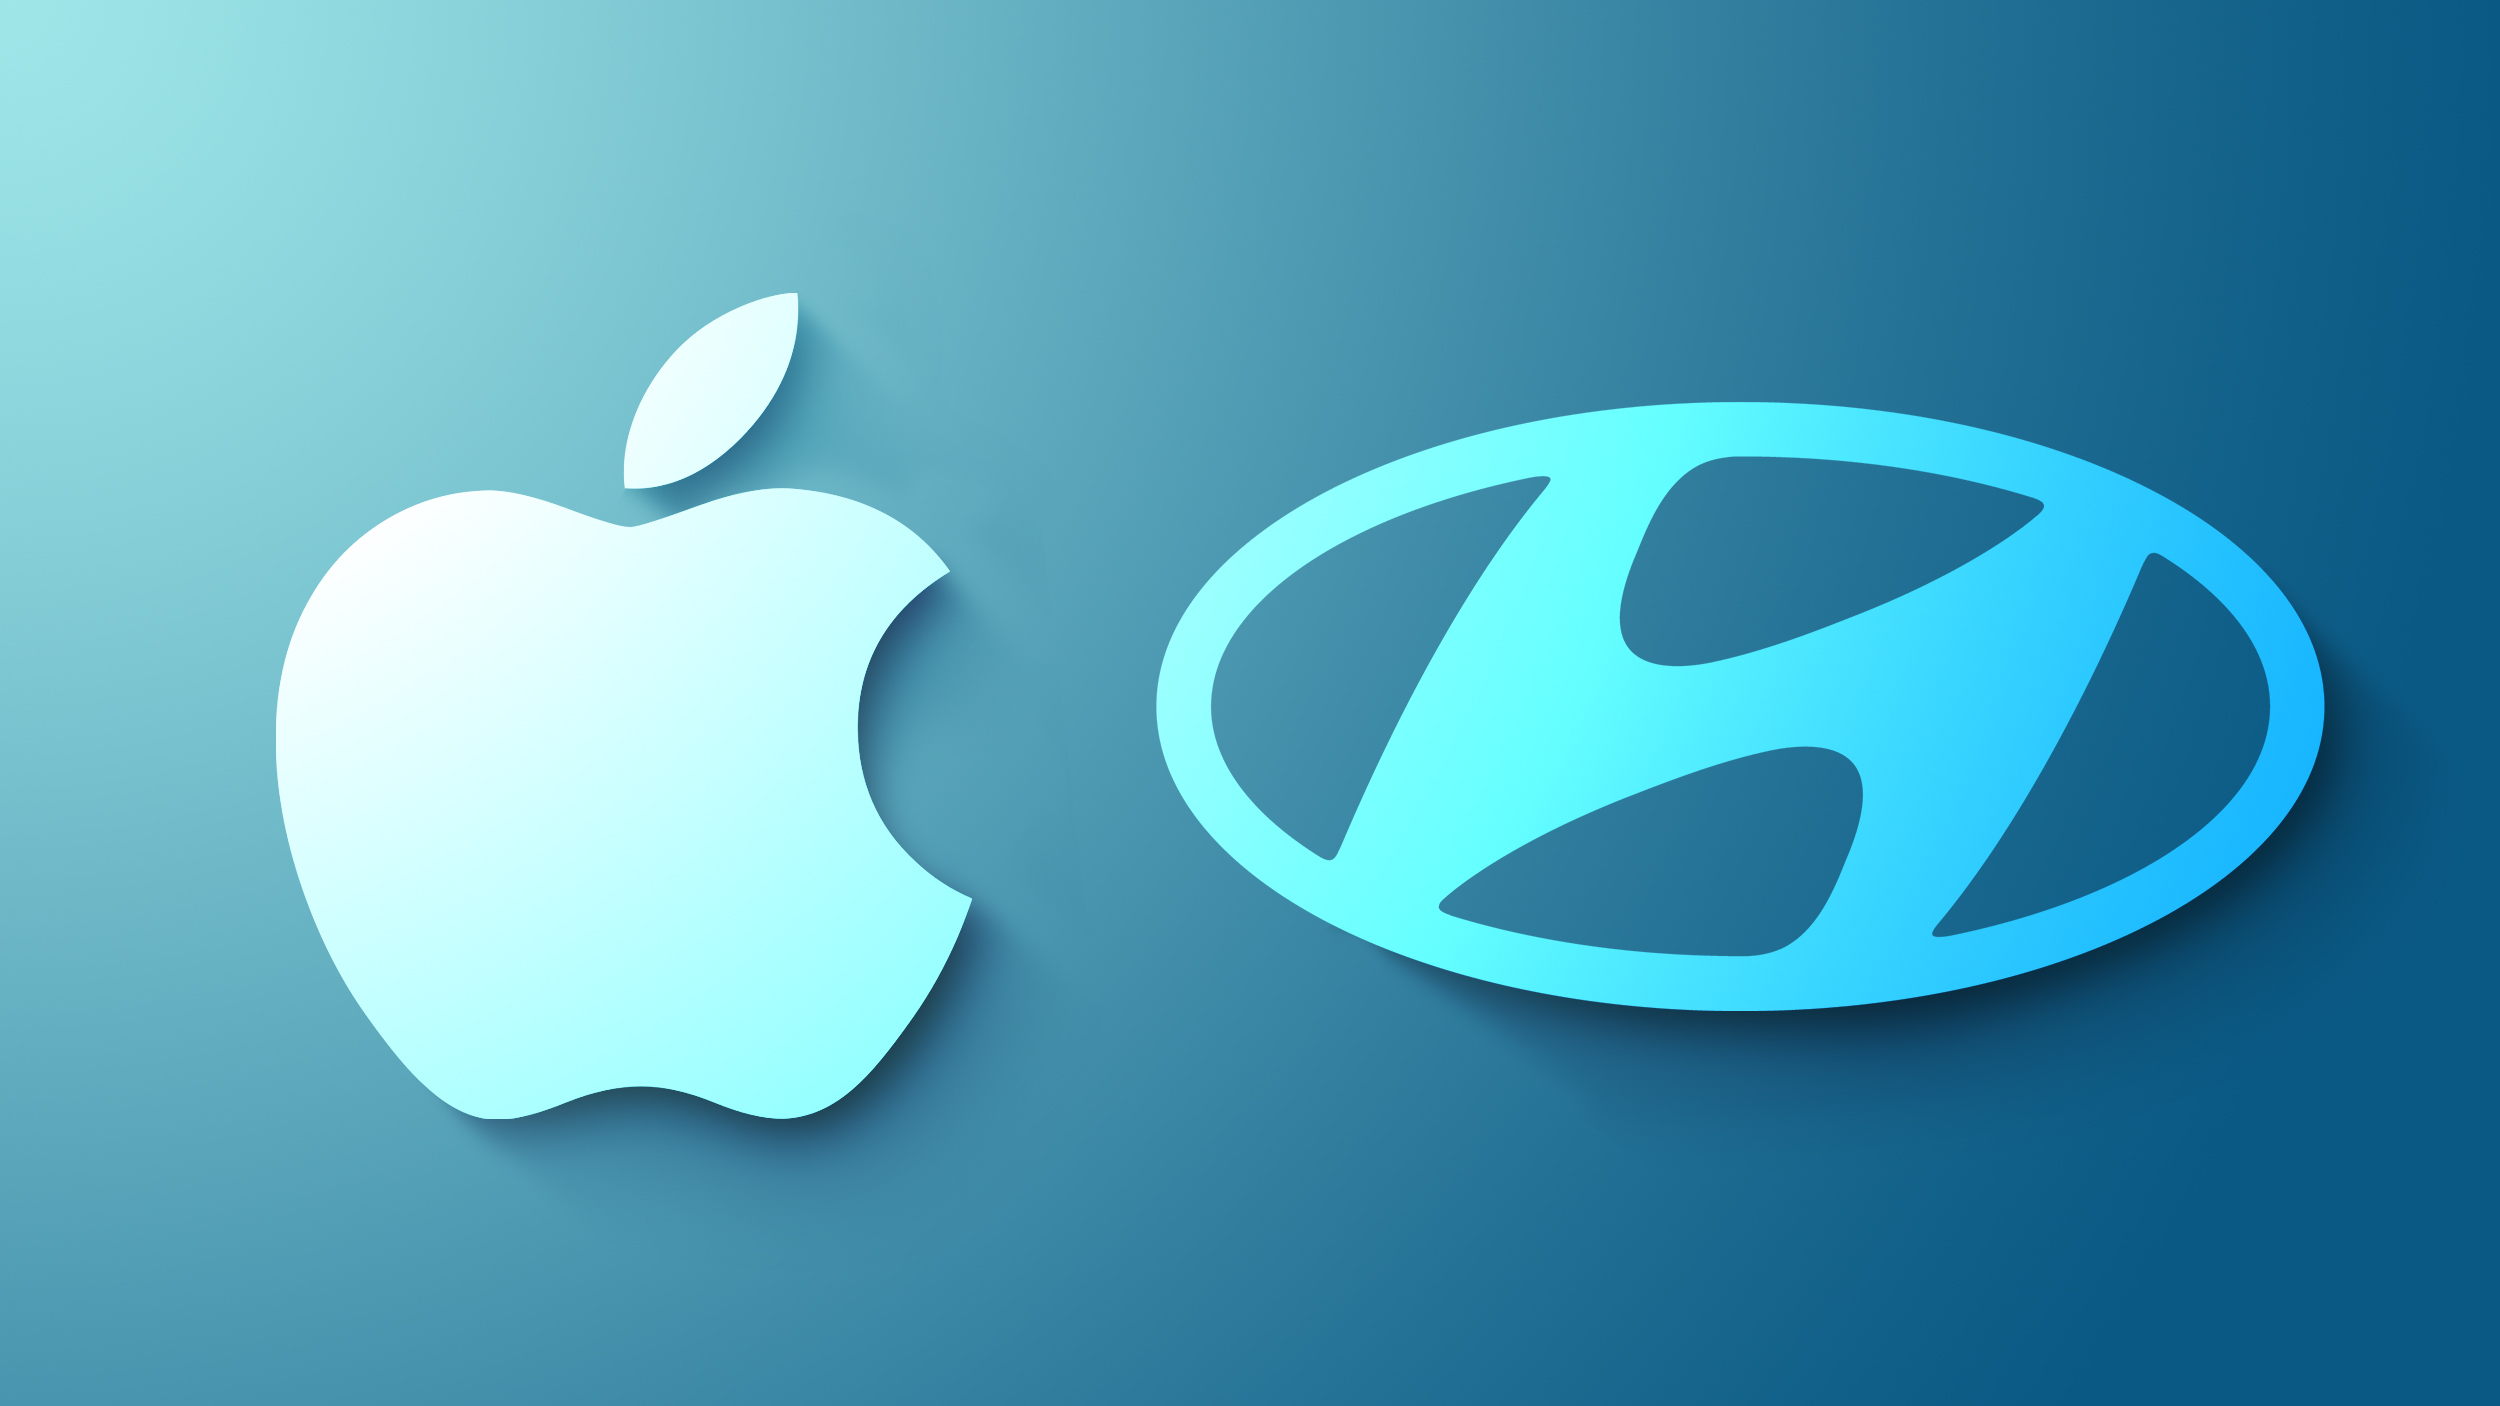 Apple and Hyundai to Sign Apple Car Deal by March With Production Beginning in 2024 | MacRumors Forums